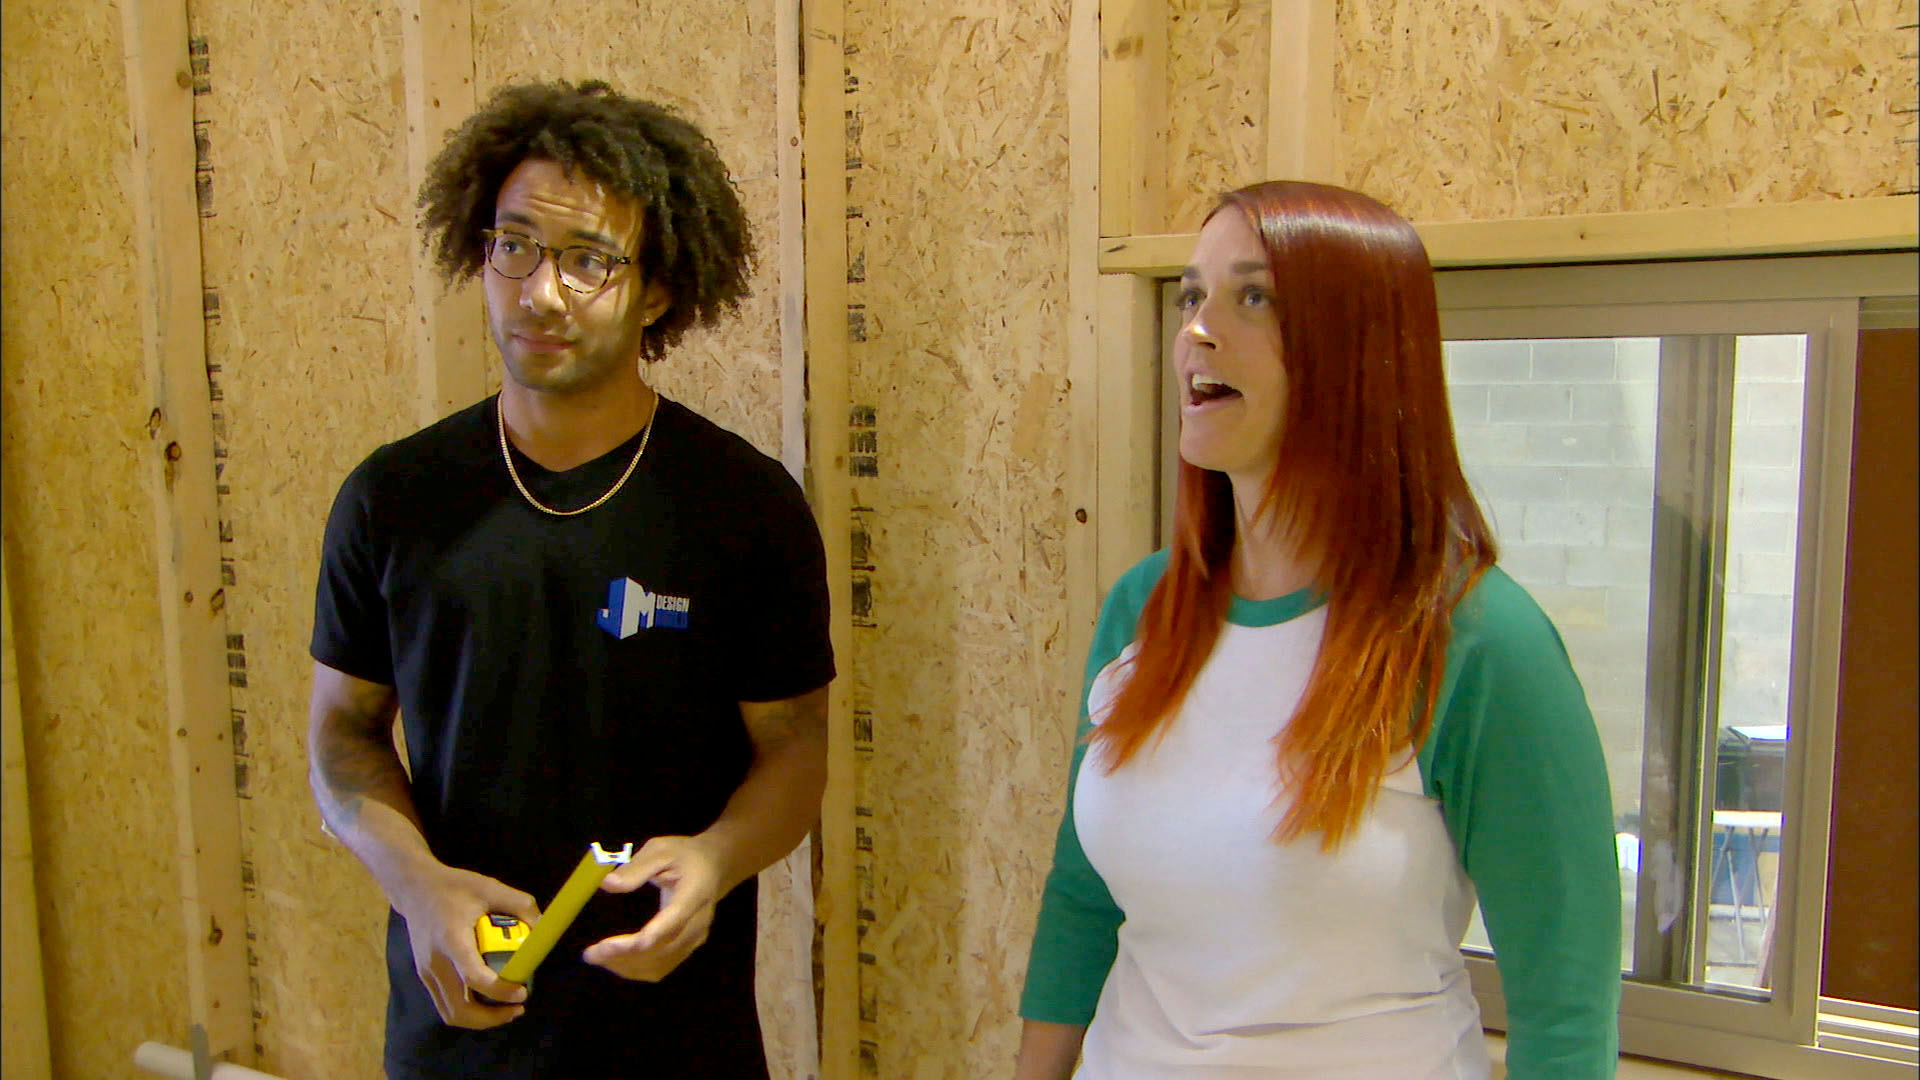 watch 220 sq. ft. bohemian escape full episode - tiny house nation